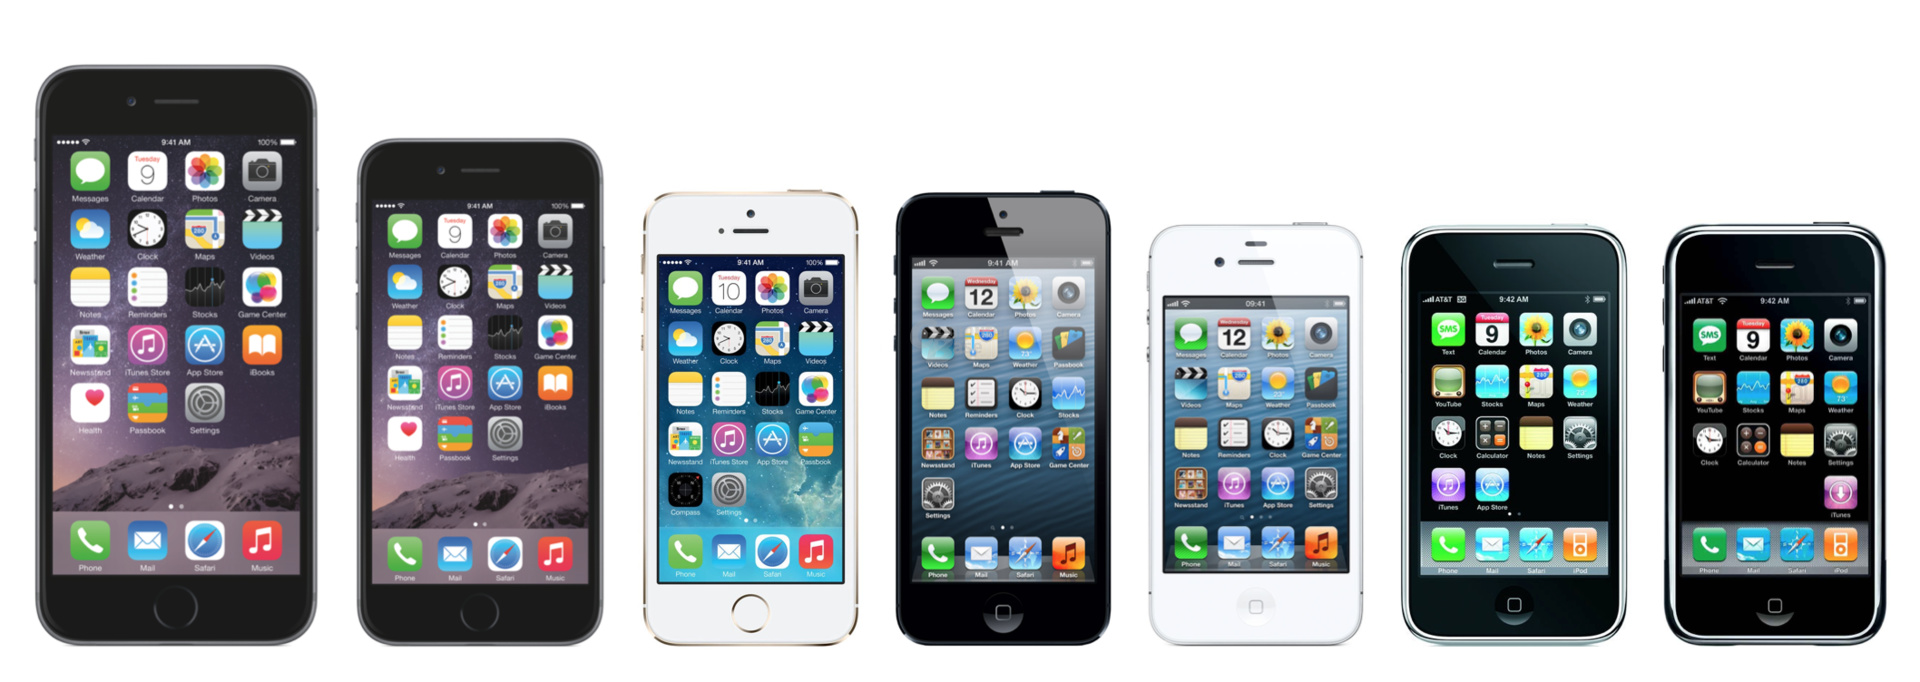 iphone 6 plus iphone 6 5s 5 4s 4 3gs 3g und 1 im